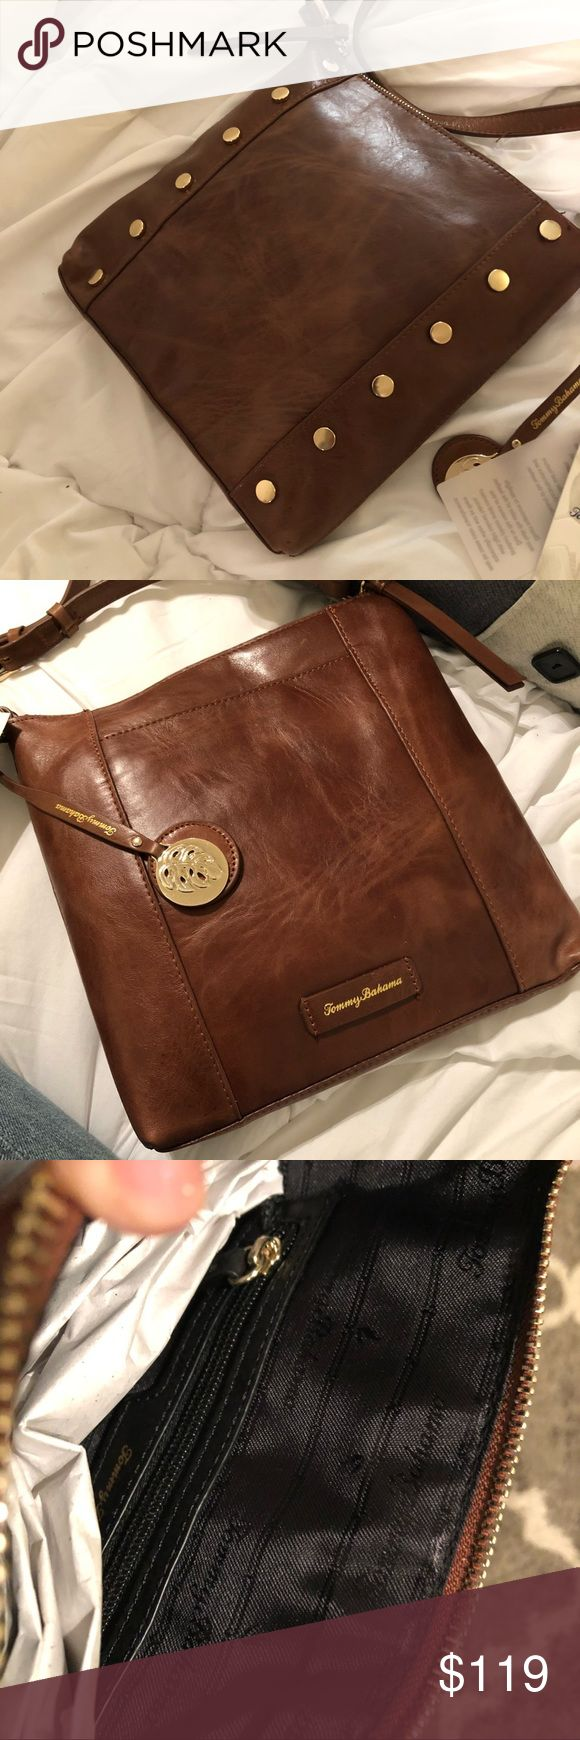 Tommy Bahama Leather Crossbody Bag!? Looks amazing coming and going!  Gleaming studs lend edgy chic appeal to this Stunning burnished deep whiskey/...